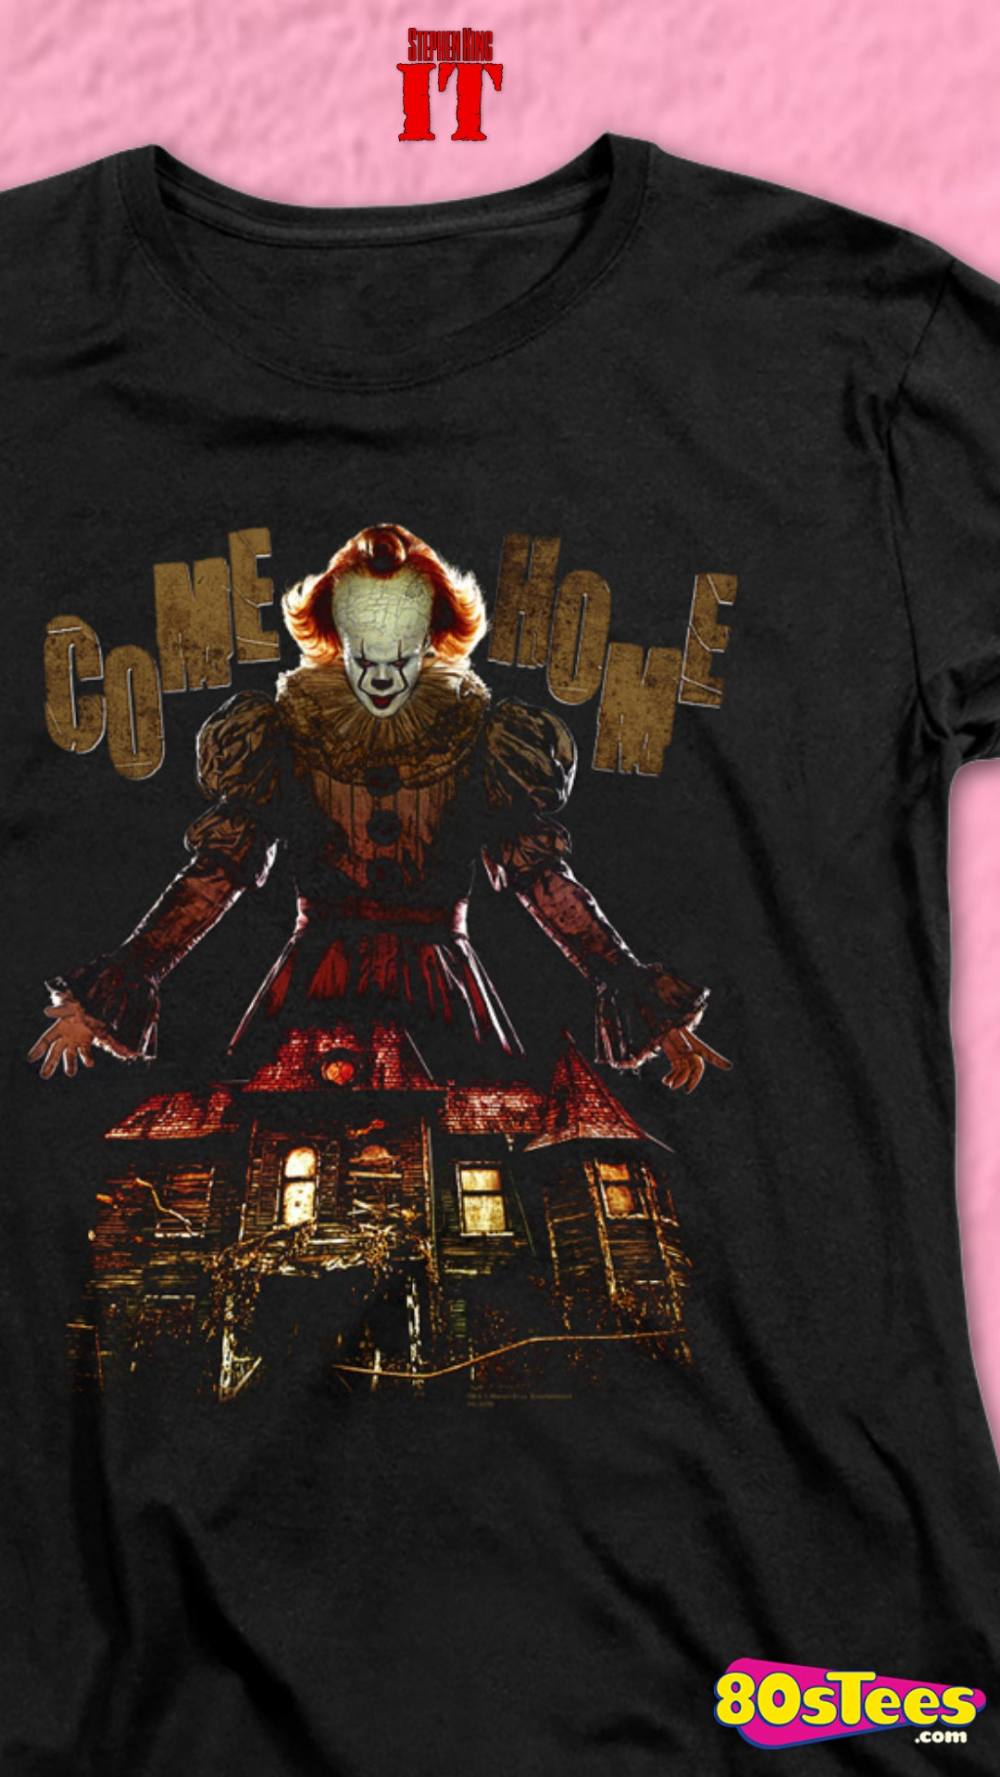 Lover Loser IT T Shirt pennywise clown movie horror 2017 black mens tee NEW